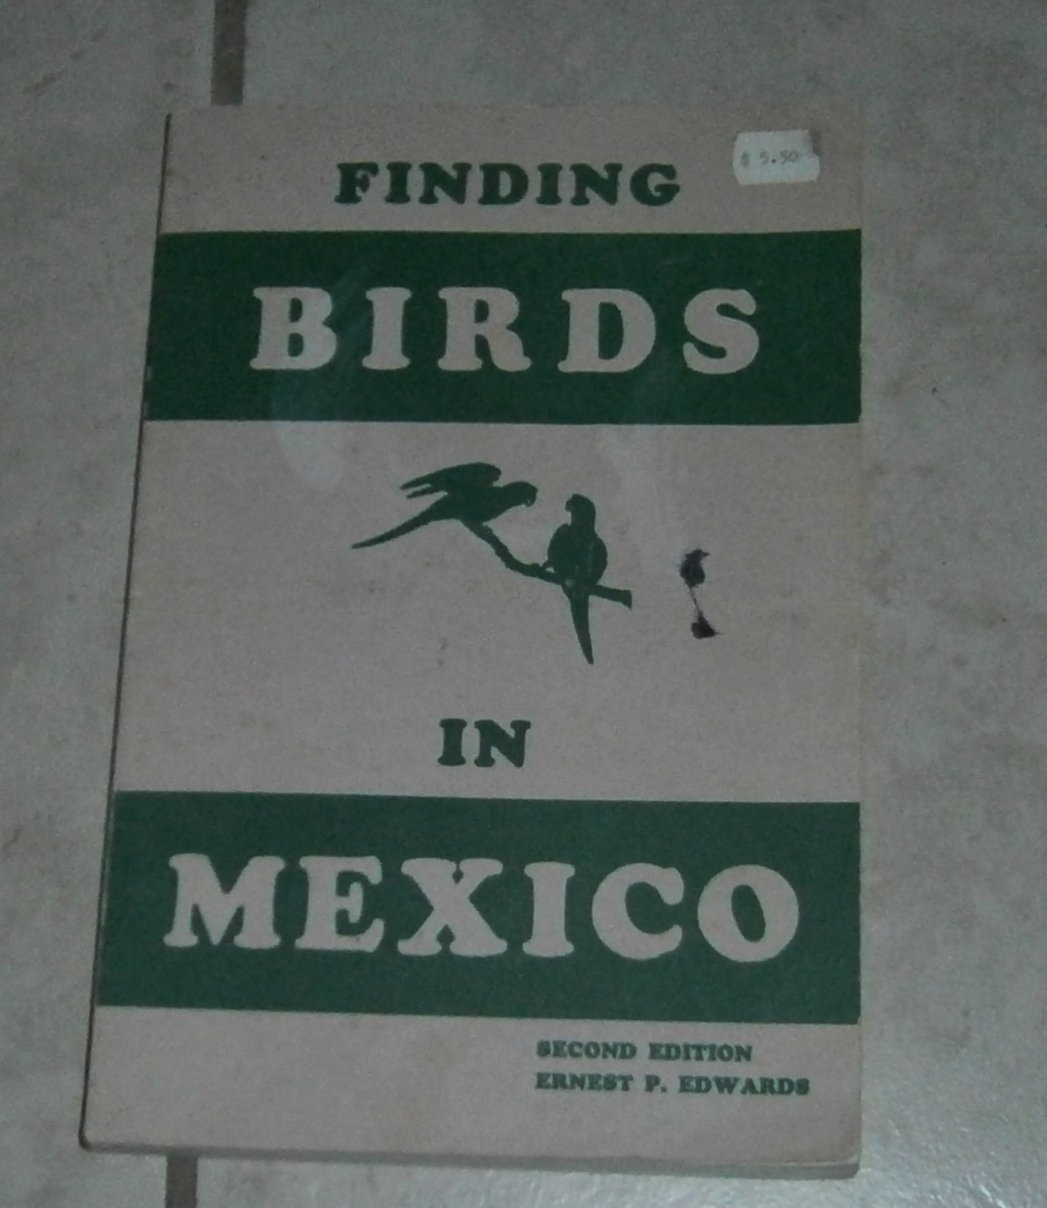 Finding Birds in Mexico Ernest Edwards Second Edition